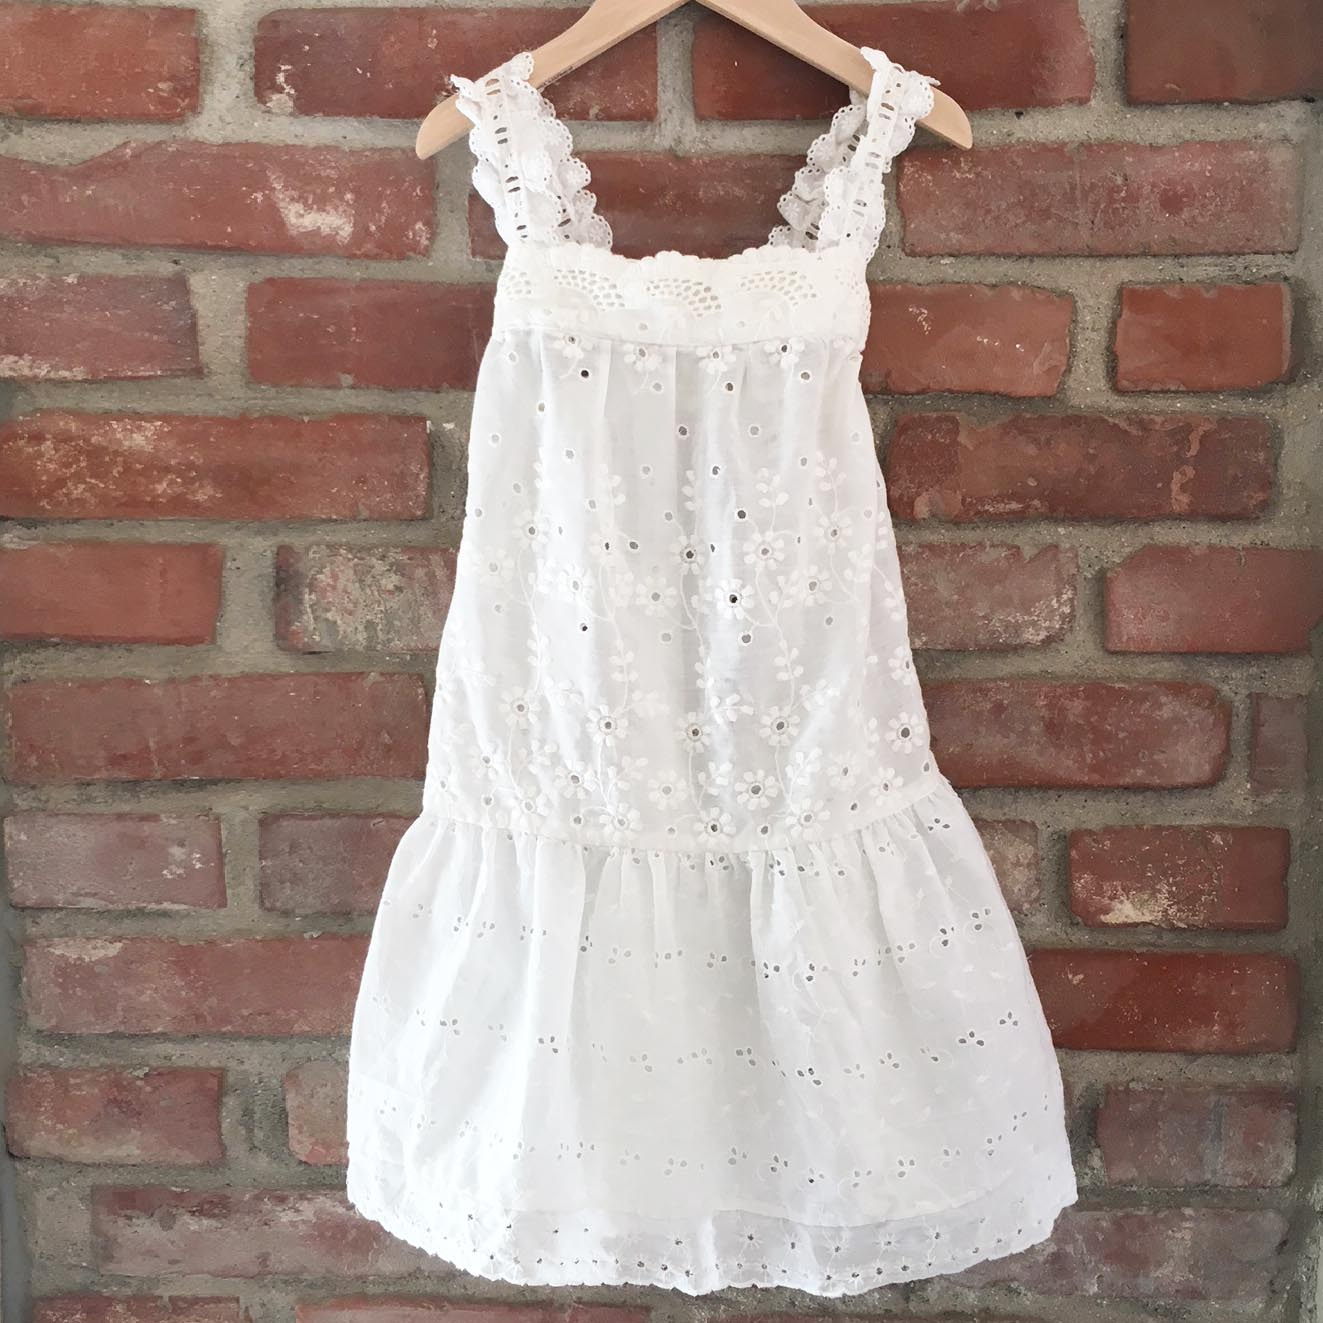 Broderie Anglais whitework dress size 4-5